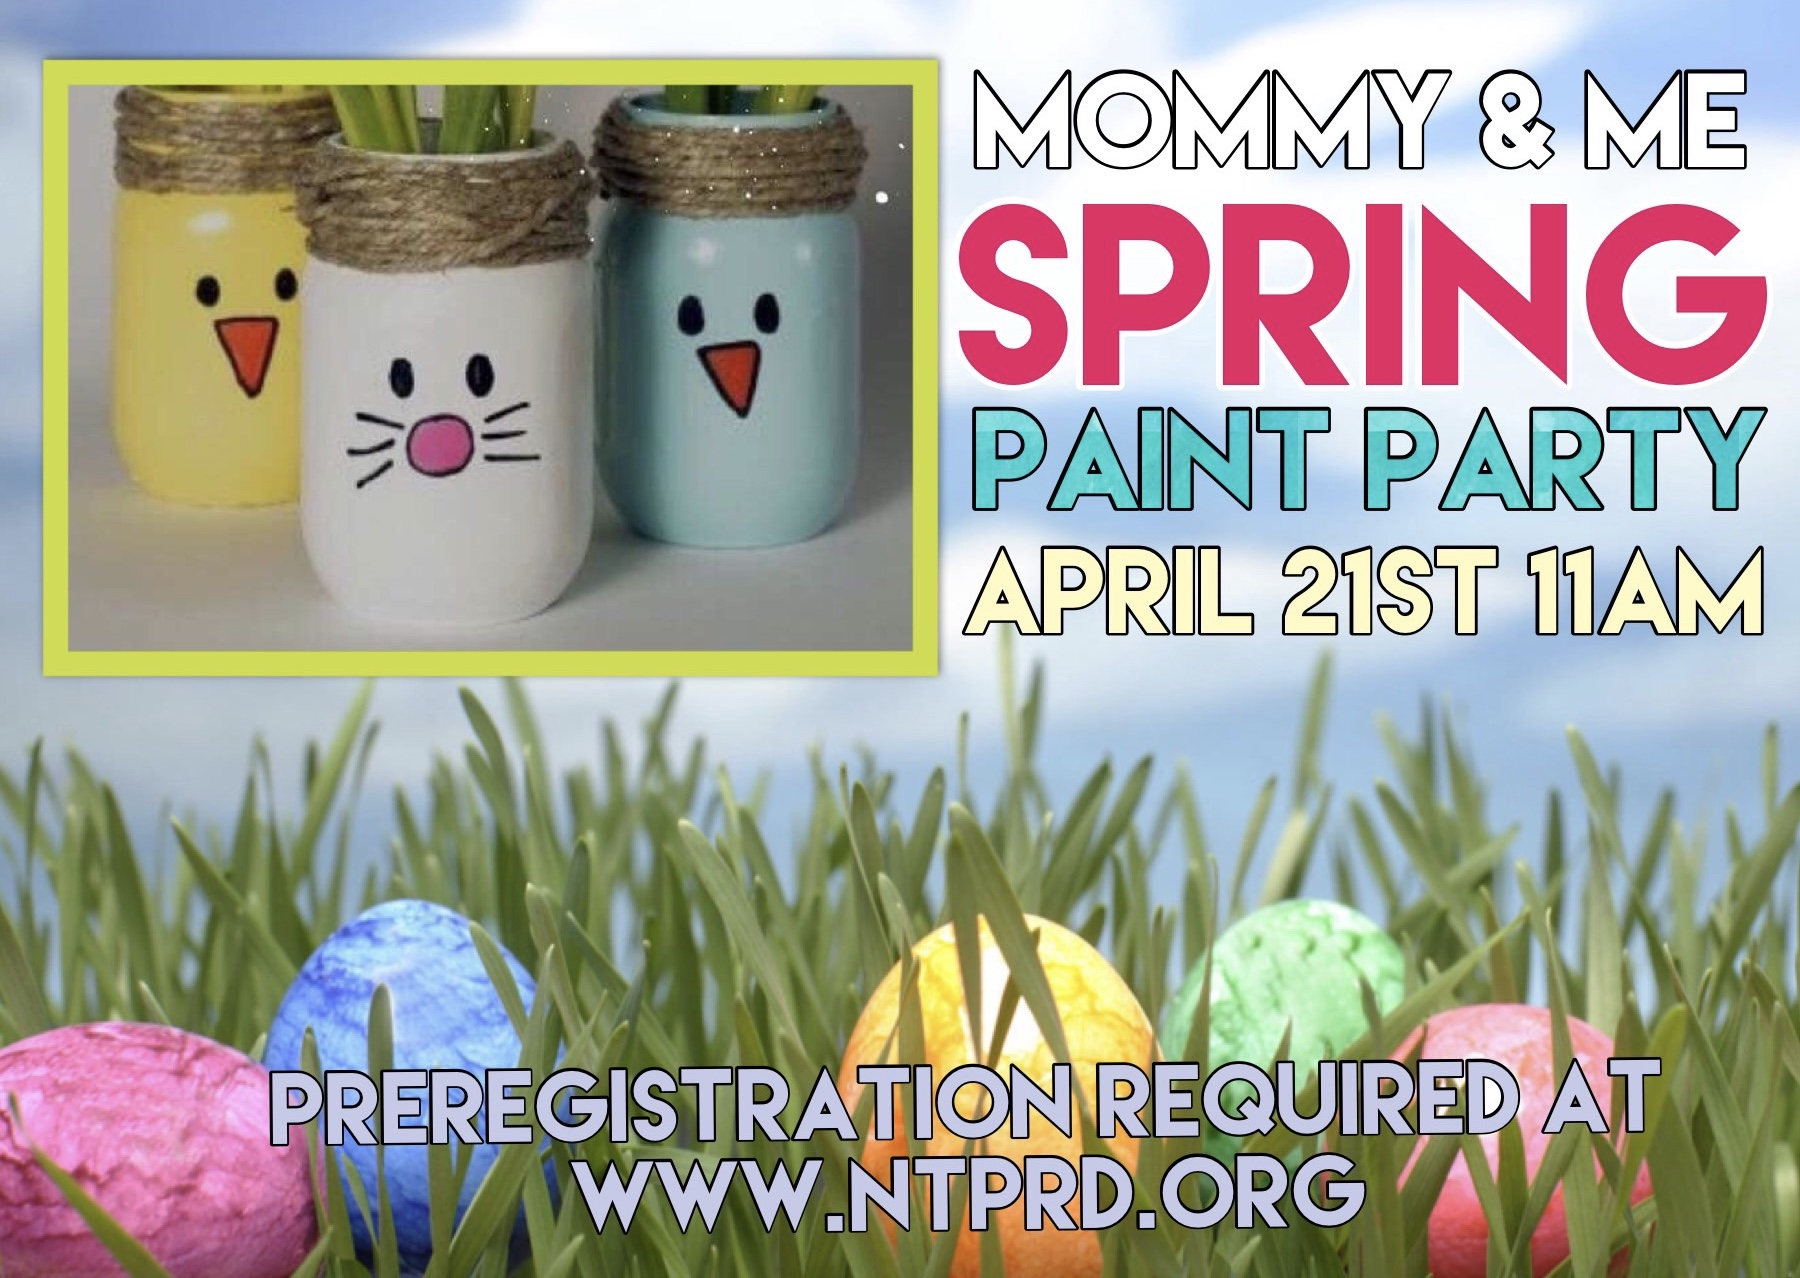 Mommy & Me Spring Paint Party